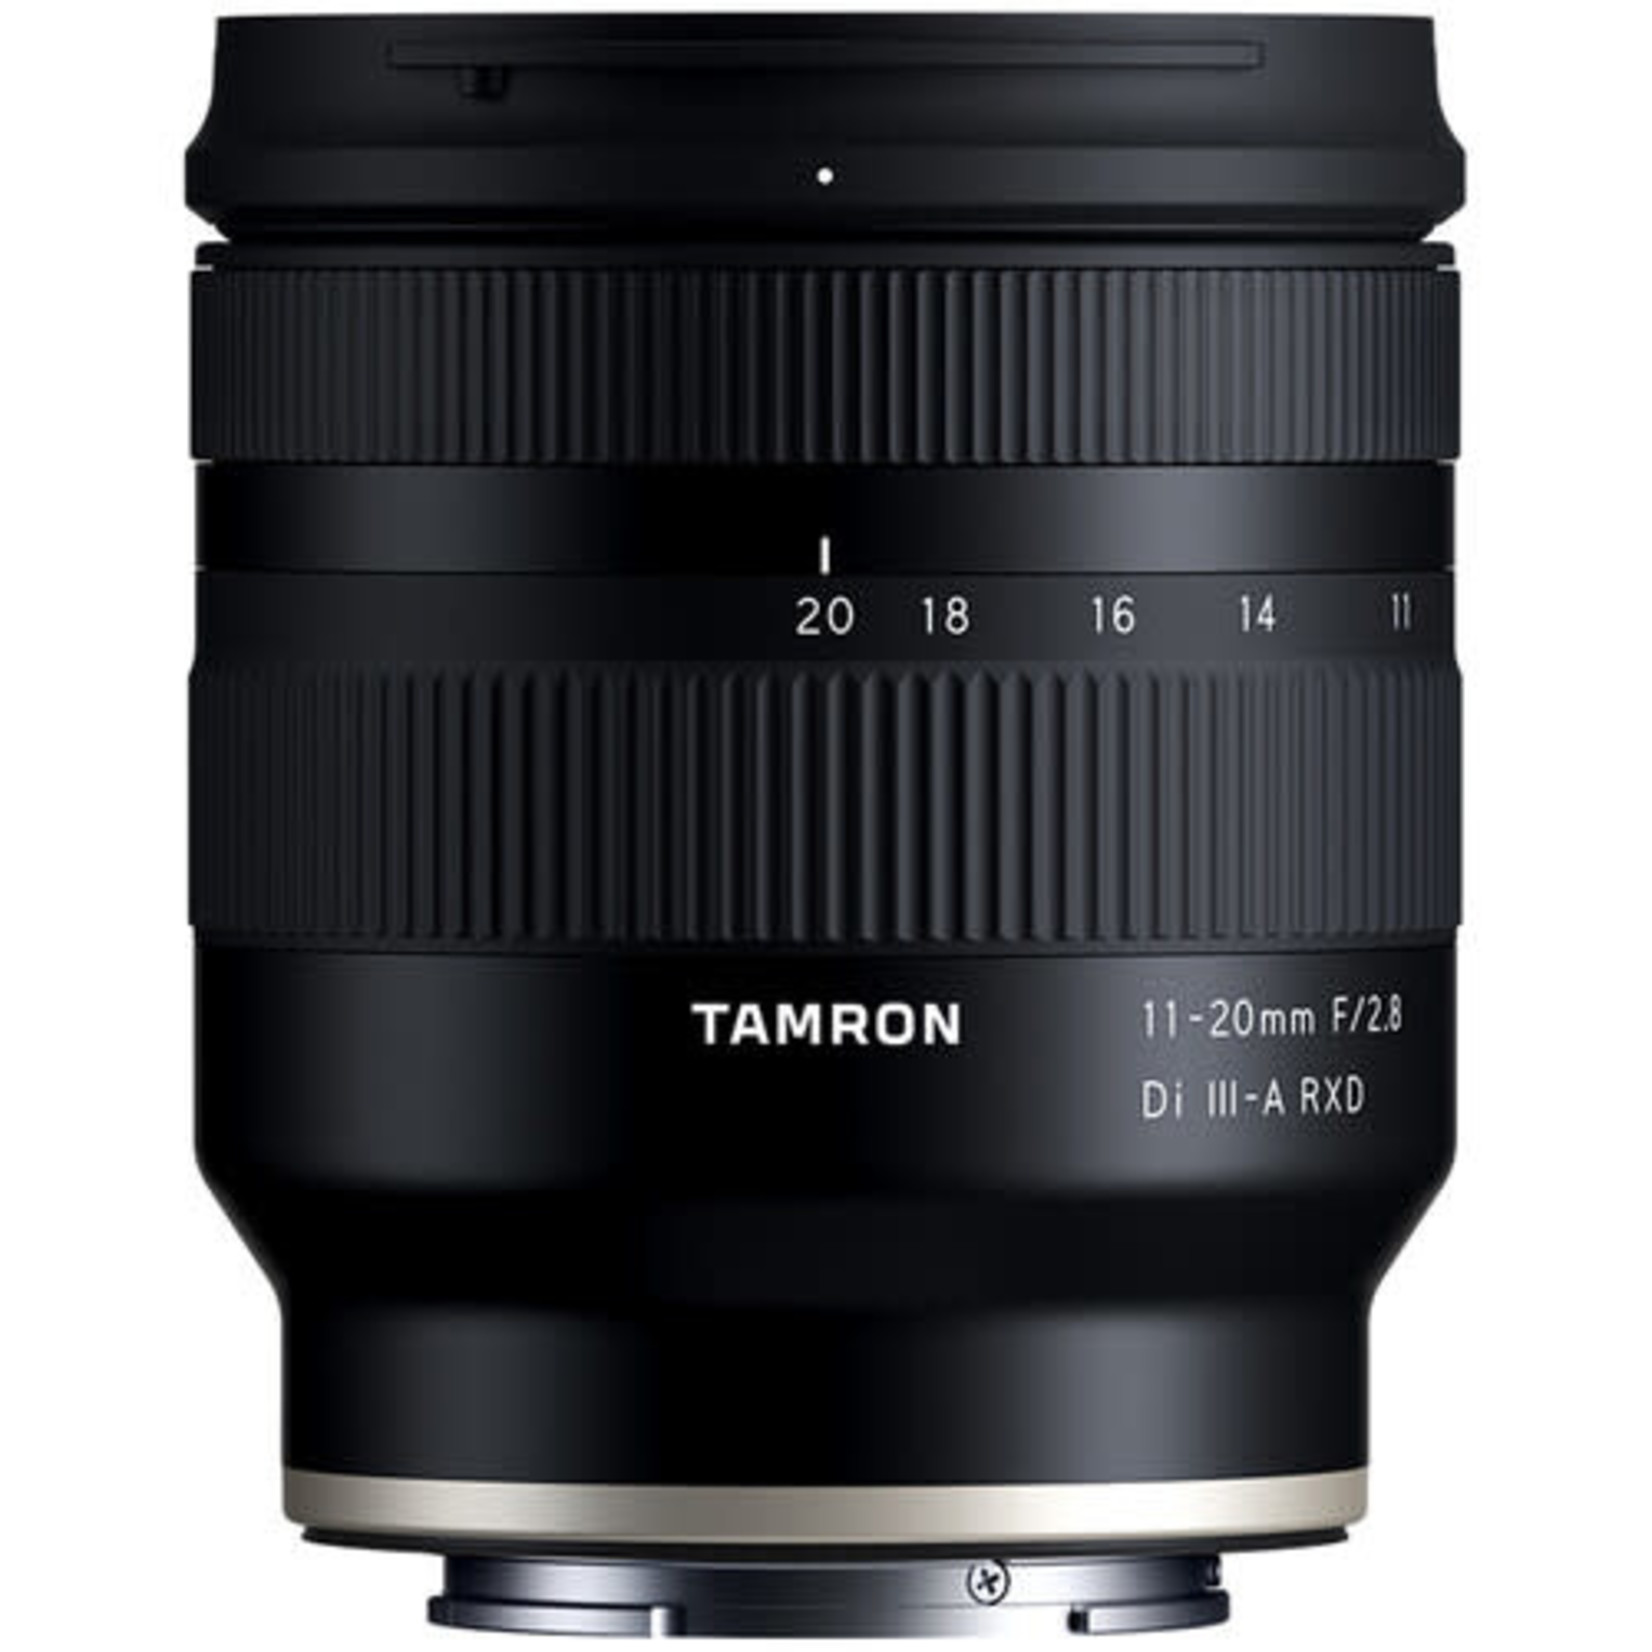 Tamron Tamron 11-20mm f/2.8 Di III-A RXD Lens for Sony E